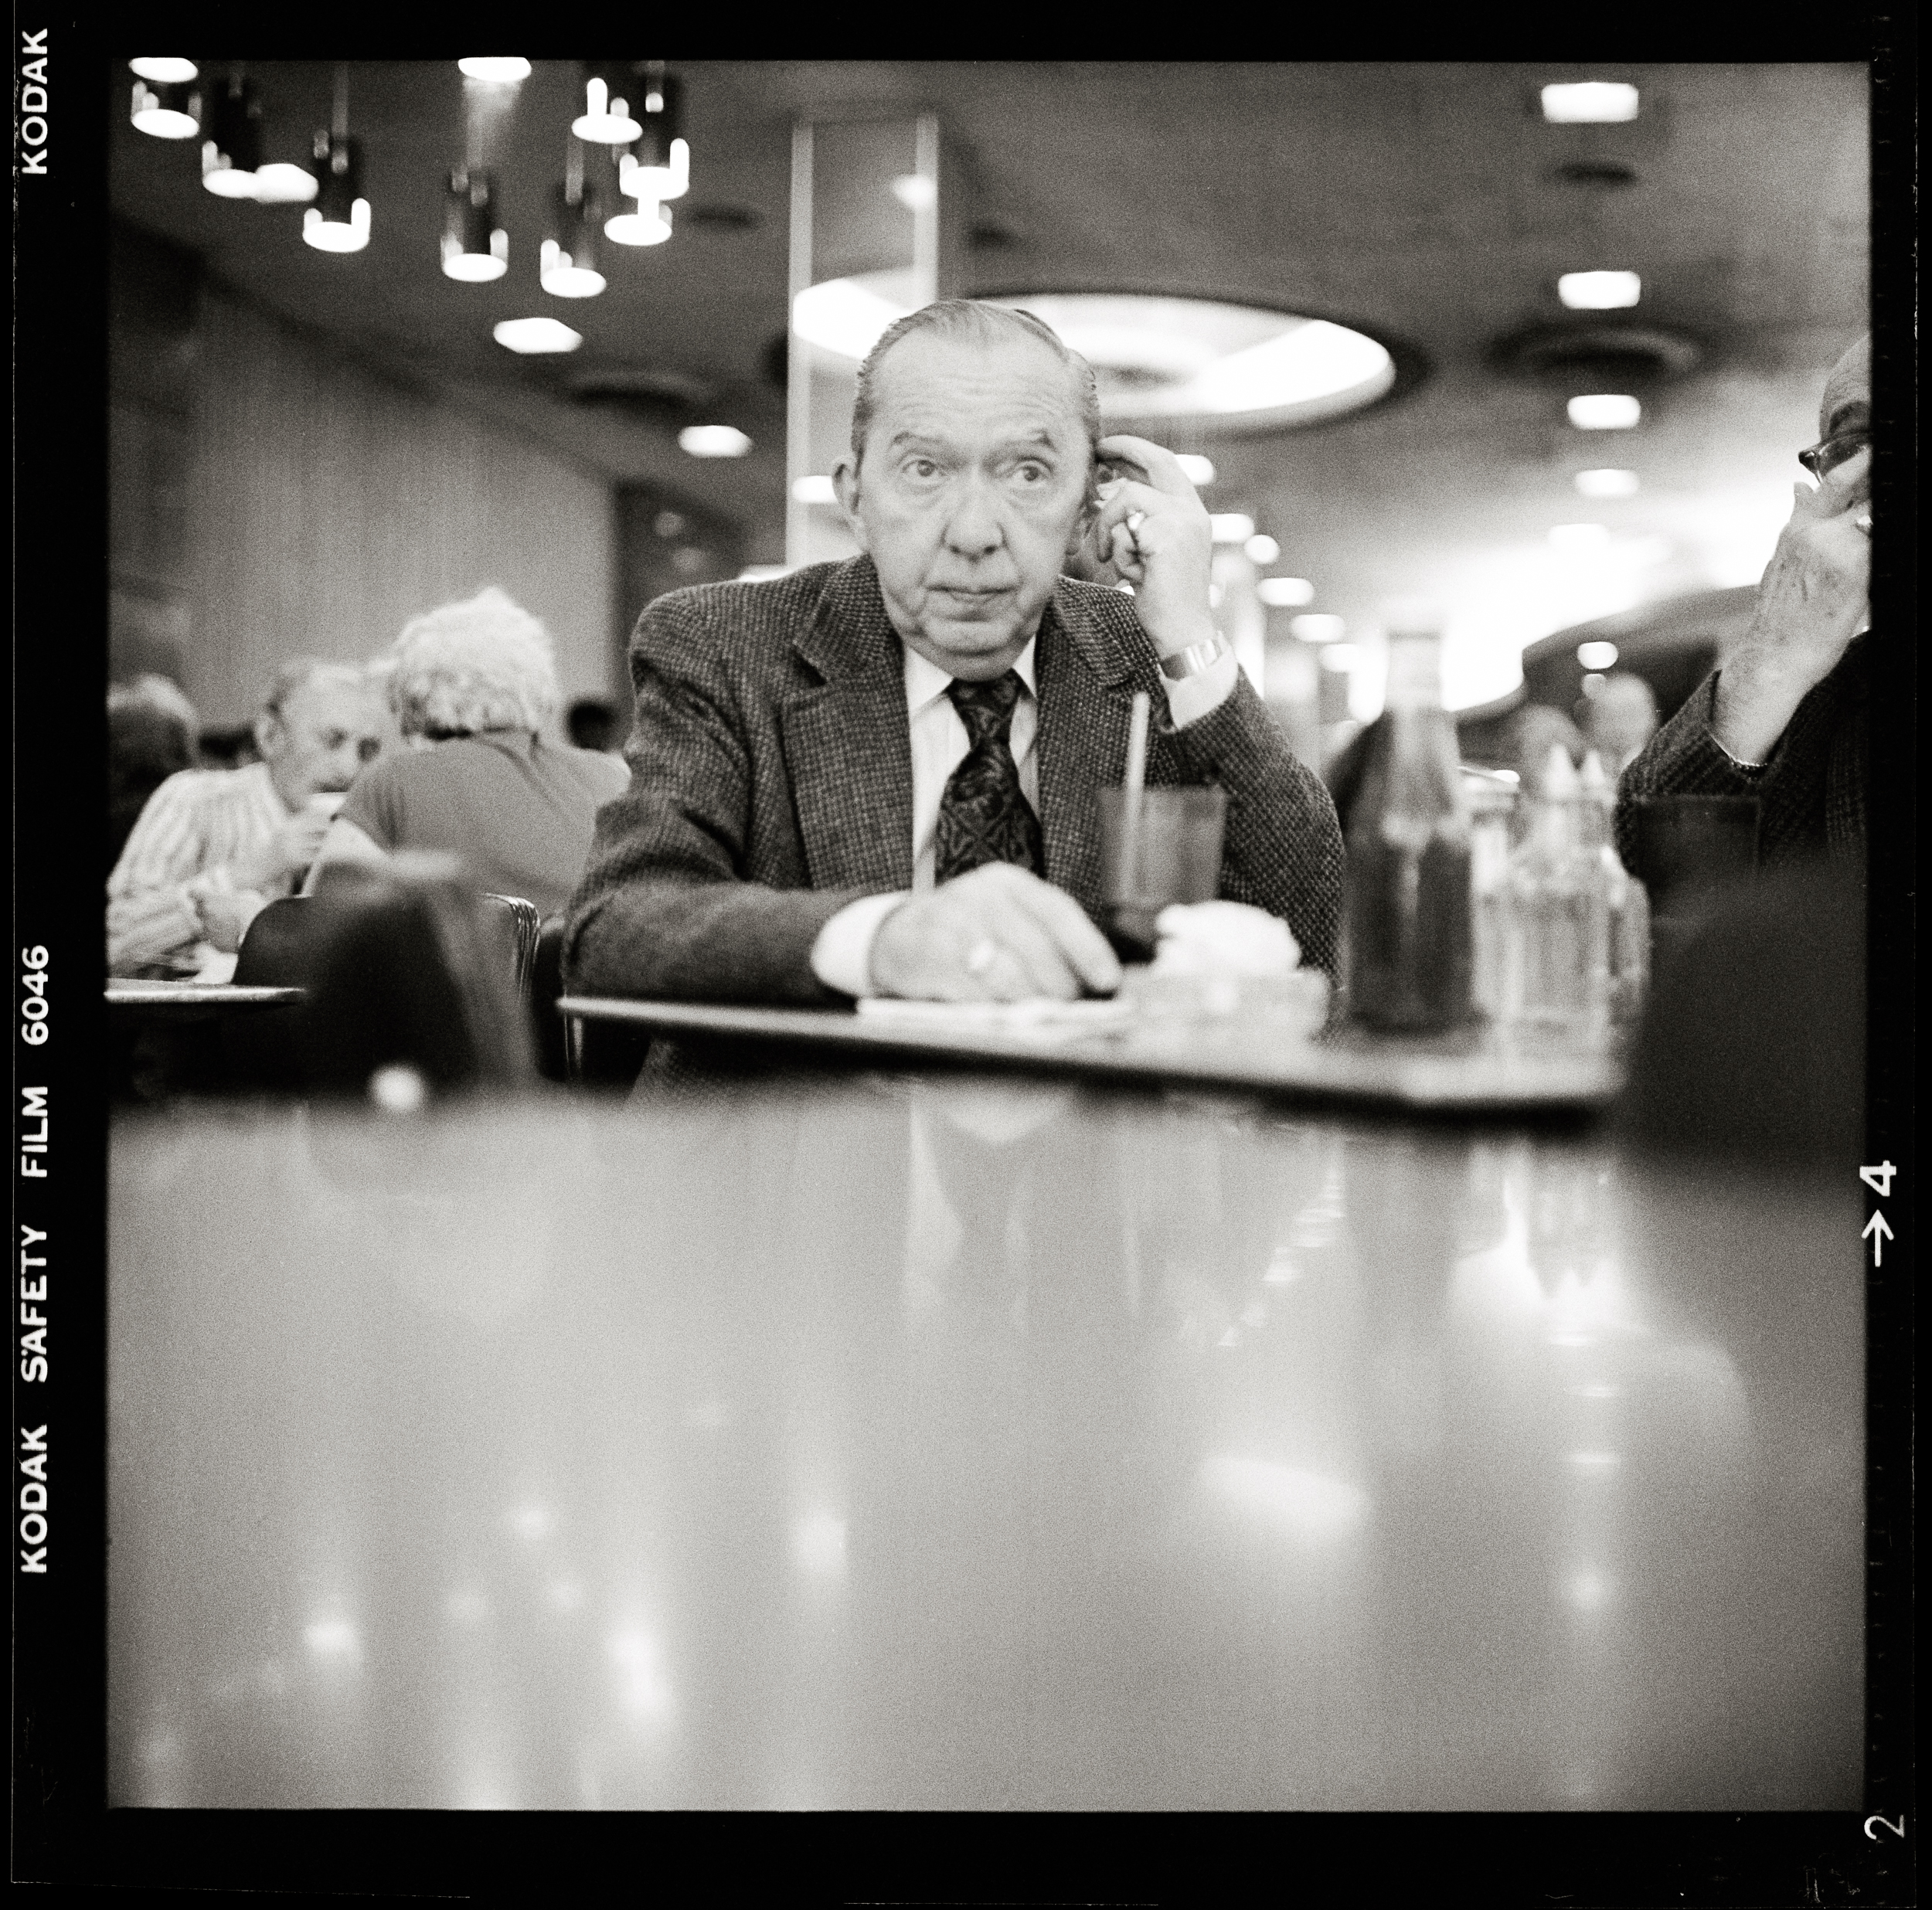 CafeteriaPortraits 09.jpg